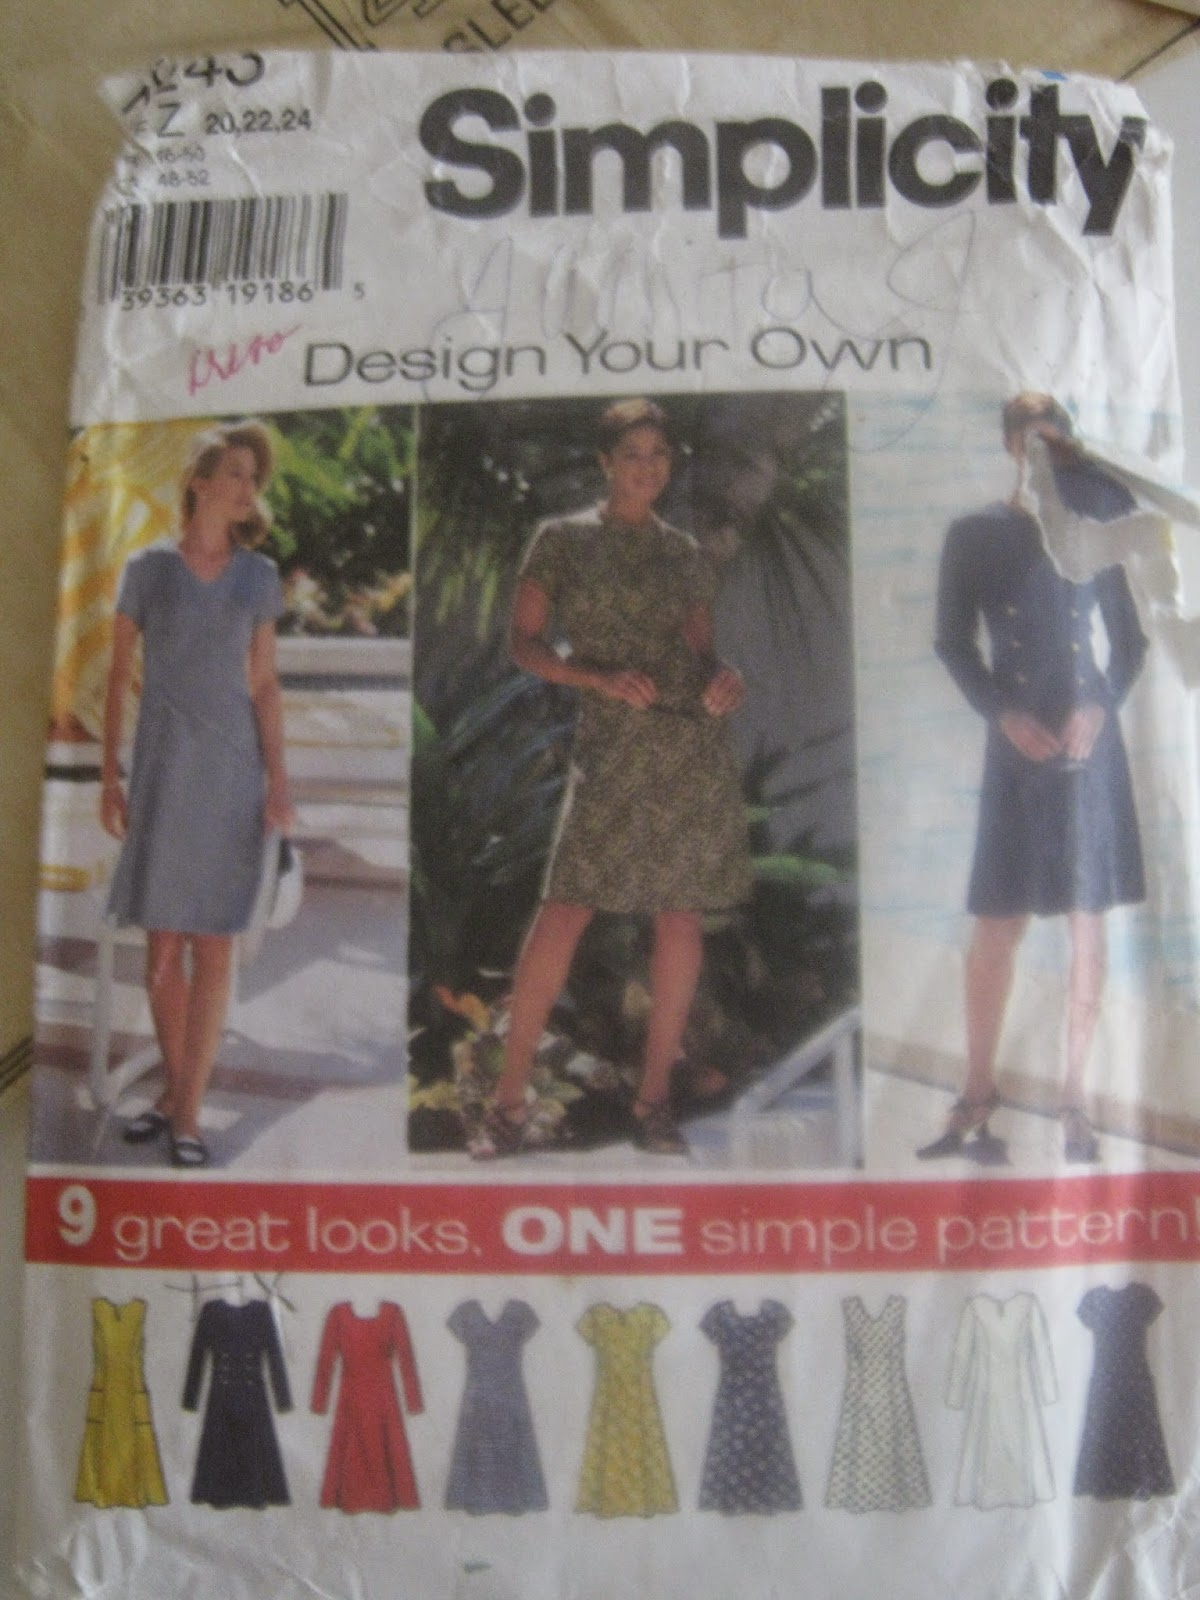 Simplicity 7243 Dress Pattern www.sewplus.blogspot.com